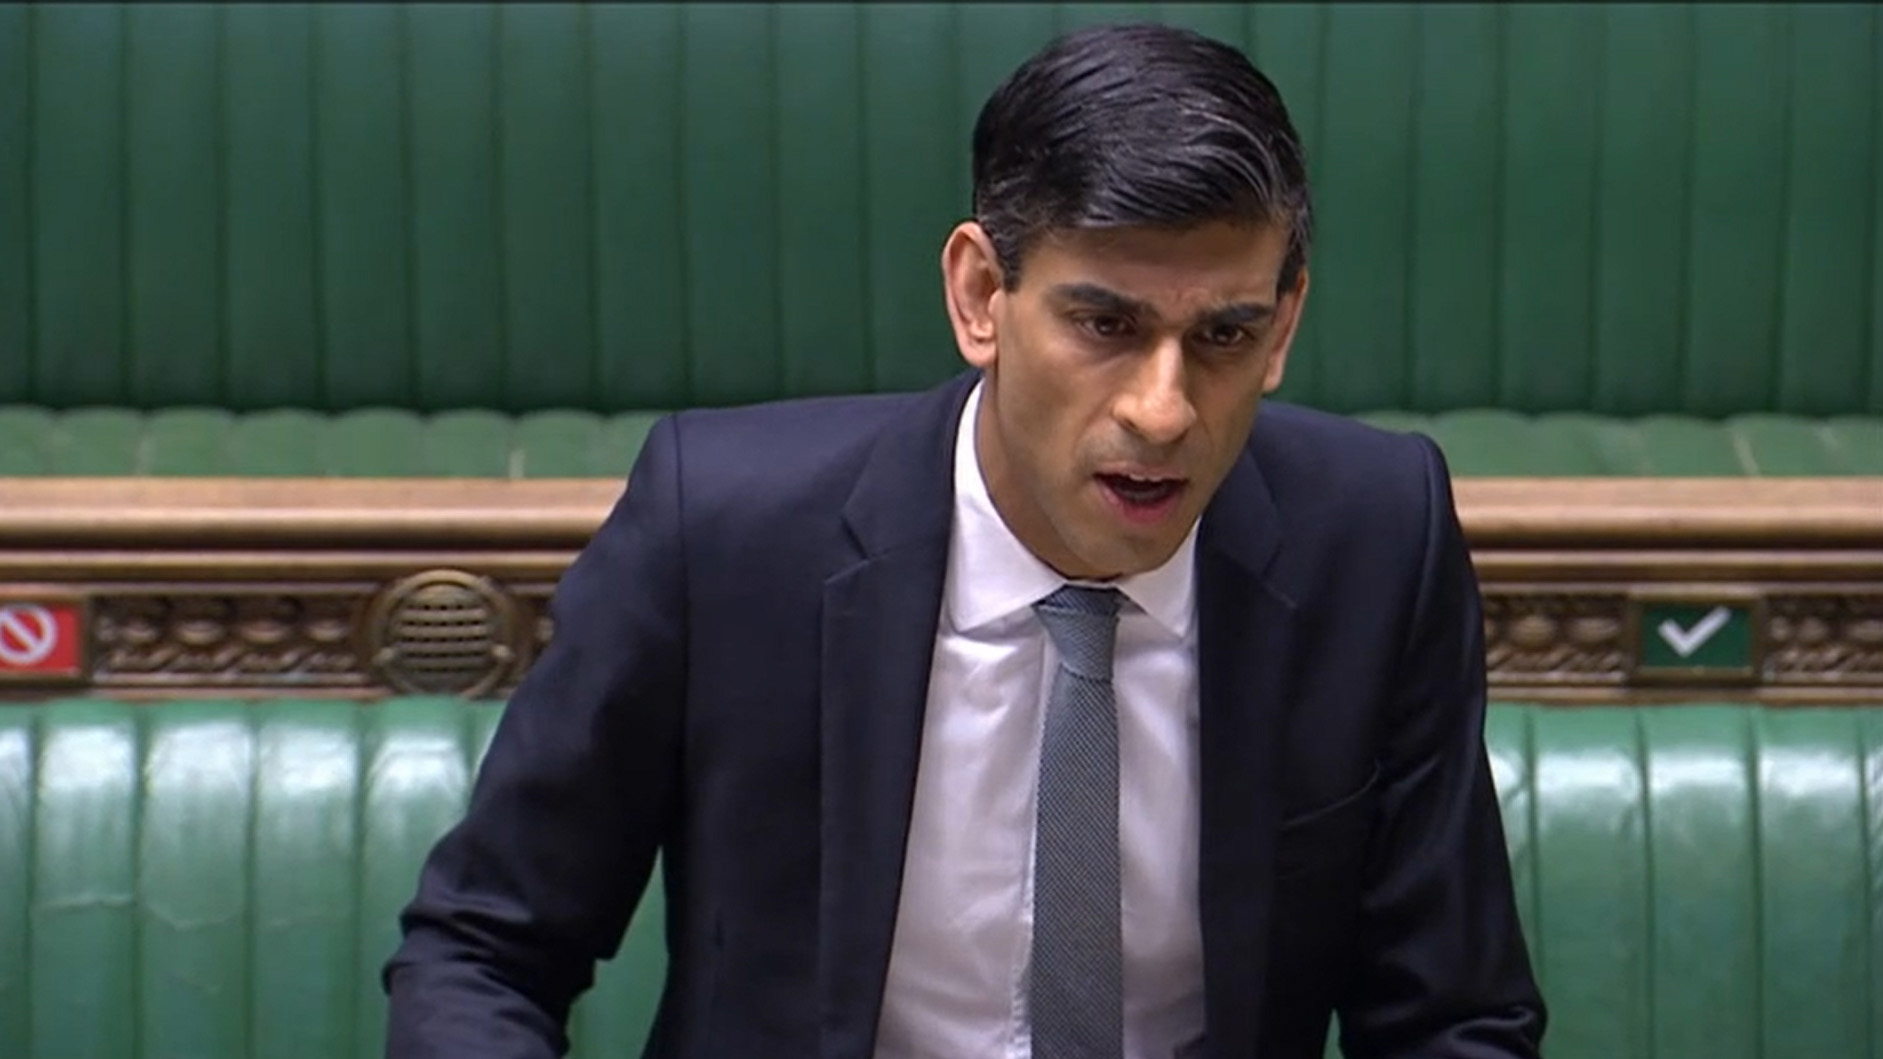 Chancellor Rishi Sunak makes a statement in the House of Commons in London on May 12.